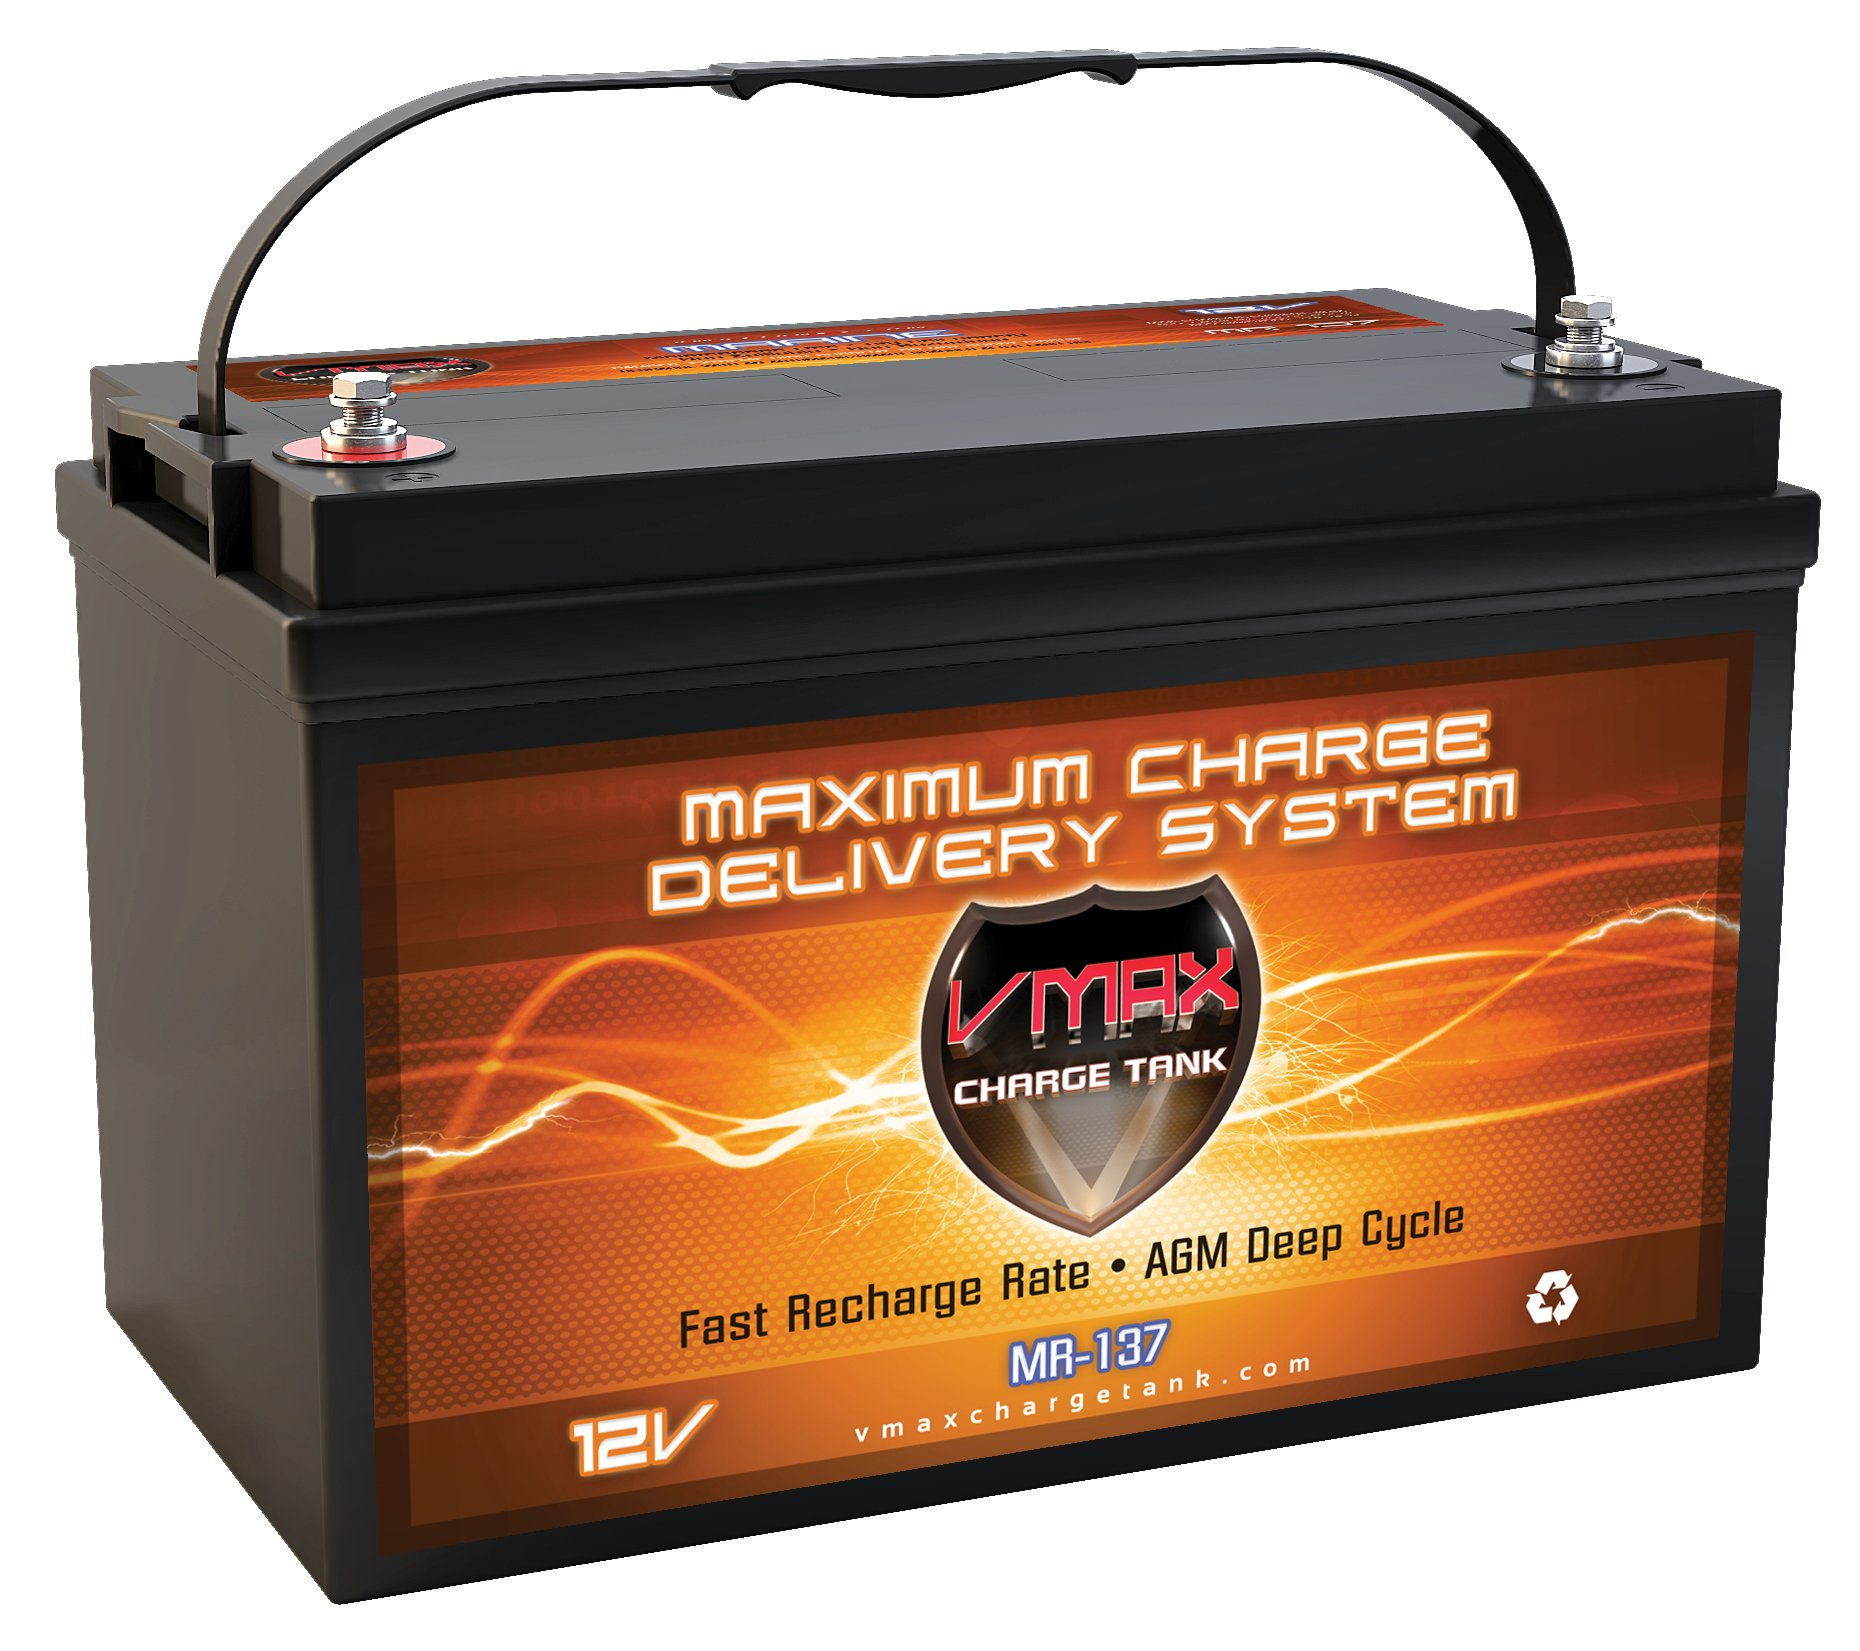 VMAX MR137-120 AGM Sealed Marine AGM Battery 12V 120AH for 50lb -110lb thrust Minn Kota, Newport Vessels, Cobra, Sevylor and other trolling motors. VMAX MR137 Deep Cycle 12V 120Ah Battery BCI group 31